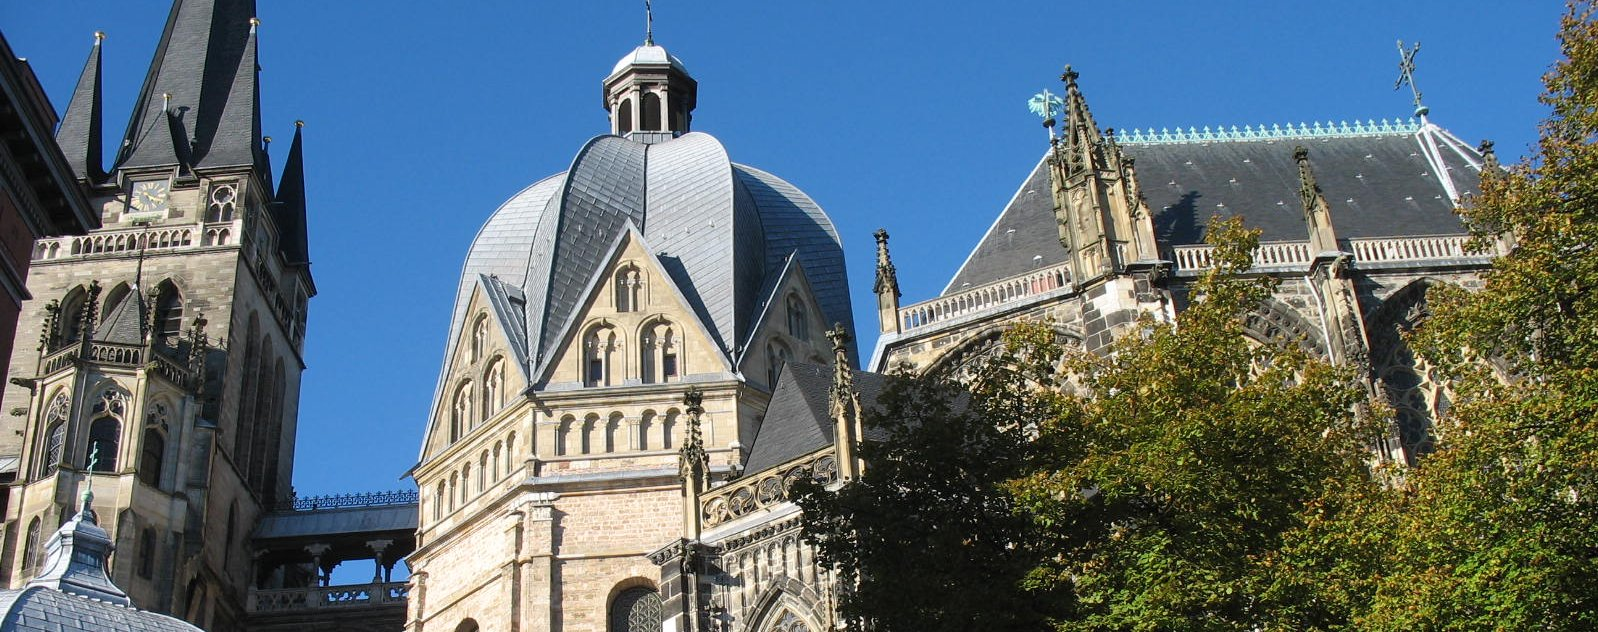 111015_aachen_cathedral-05_start